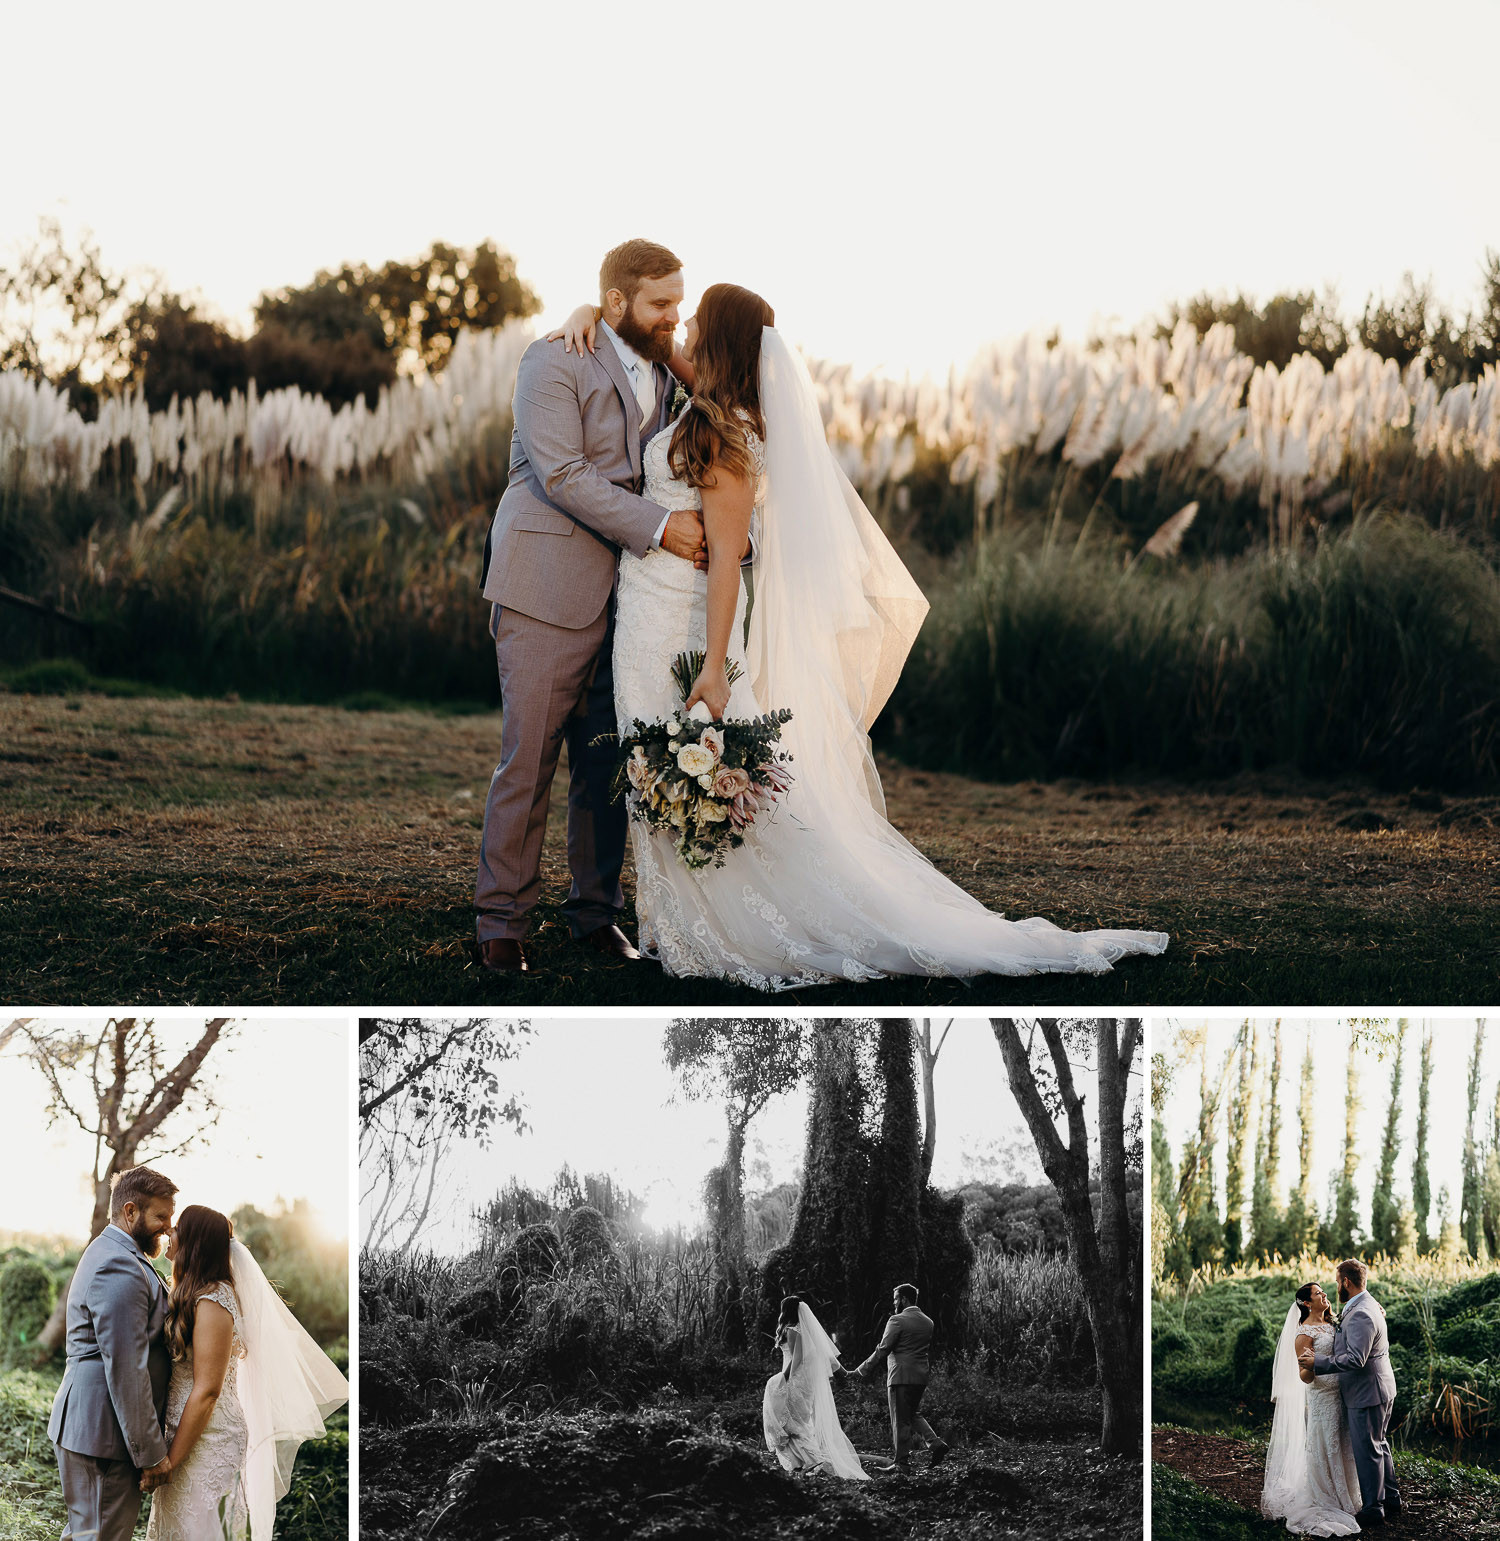 Couple photoshoot at a park, couple prewed and engagement shoot at a park, couple in suit and gown in park, couple holding a bouquet in a park, couple walking among trees, couple photoshoot among trees